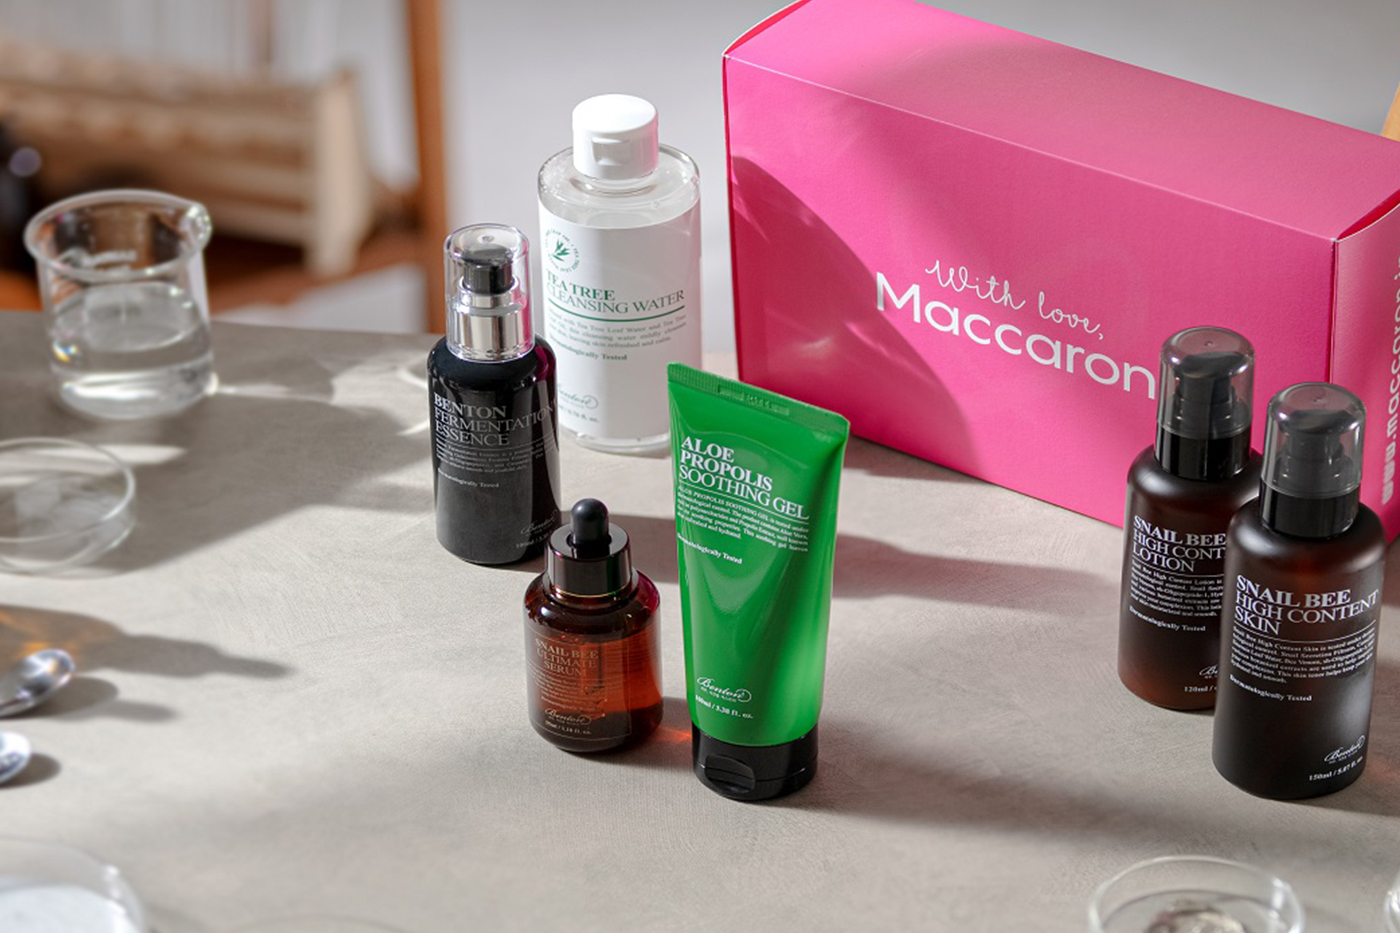 Maccaron Beauty launches two new Korean skincare brands in India